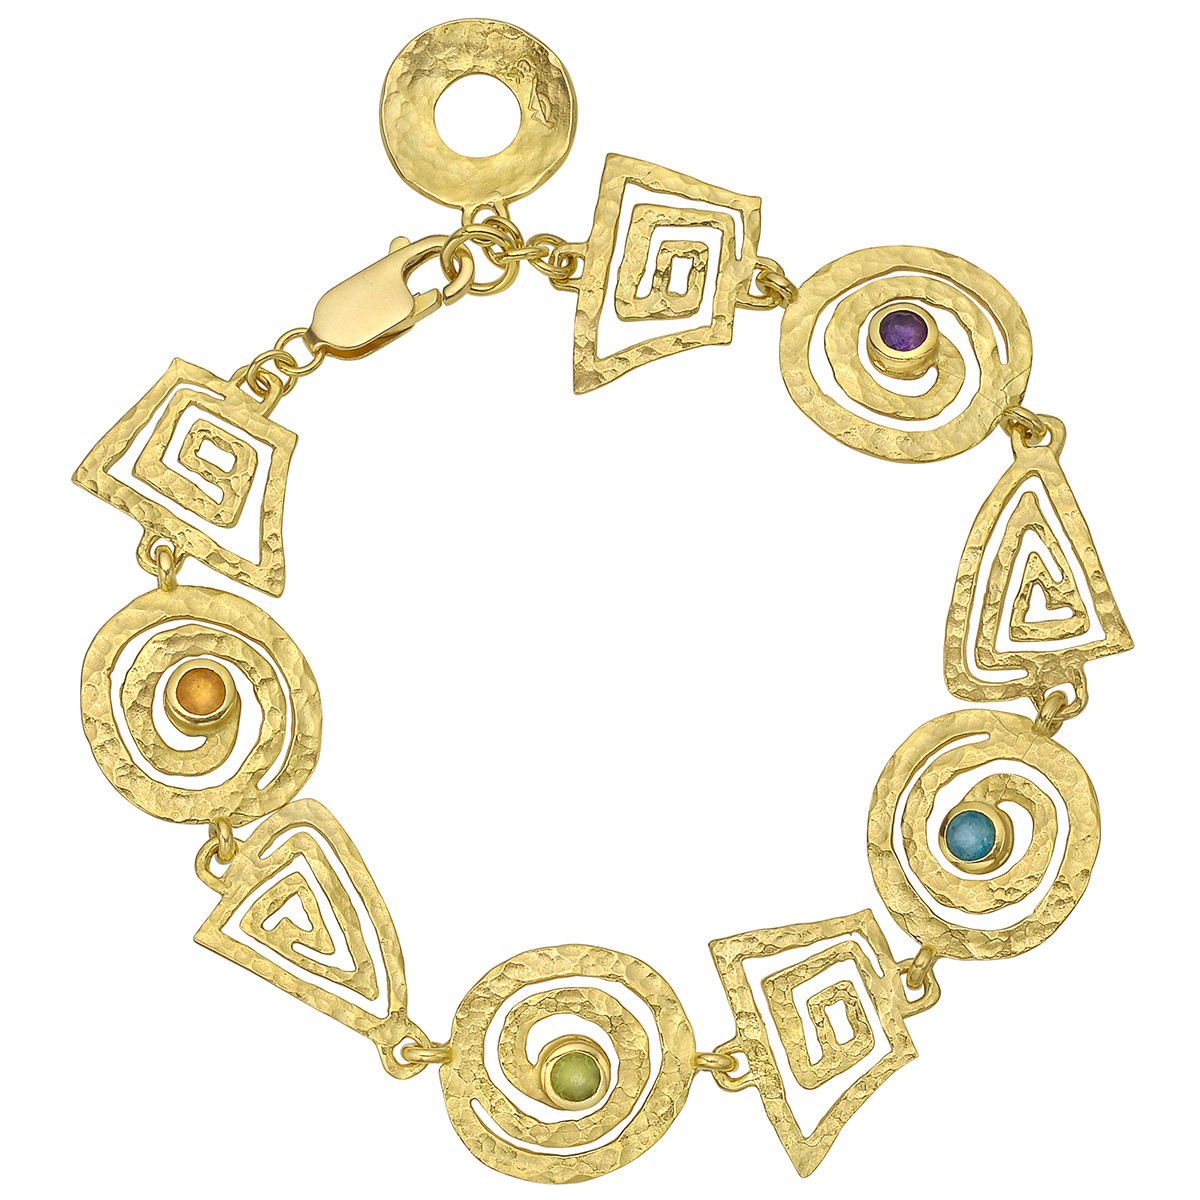 14k Gold & Gem-Set Geometric Link Bracelet